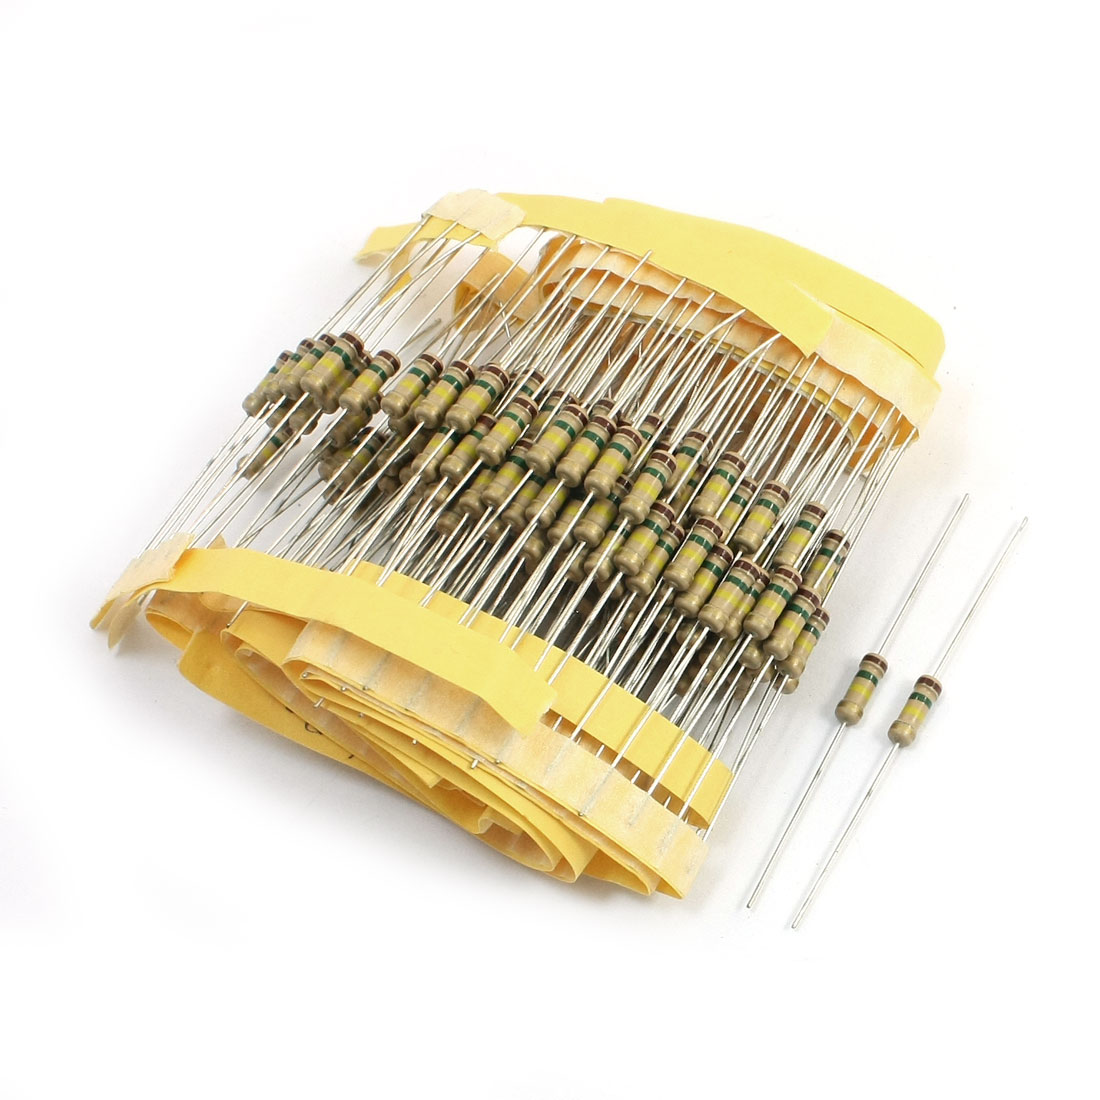 200 Pcs 150K Ohm 0.5Watt 5% Tolerance Axial Lead Type Through Hole Mounting Carbon Film Fixed Resistors